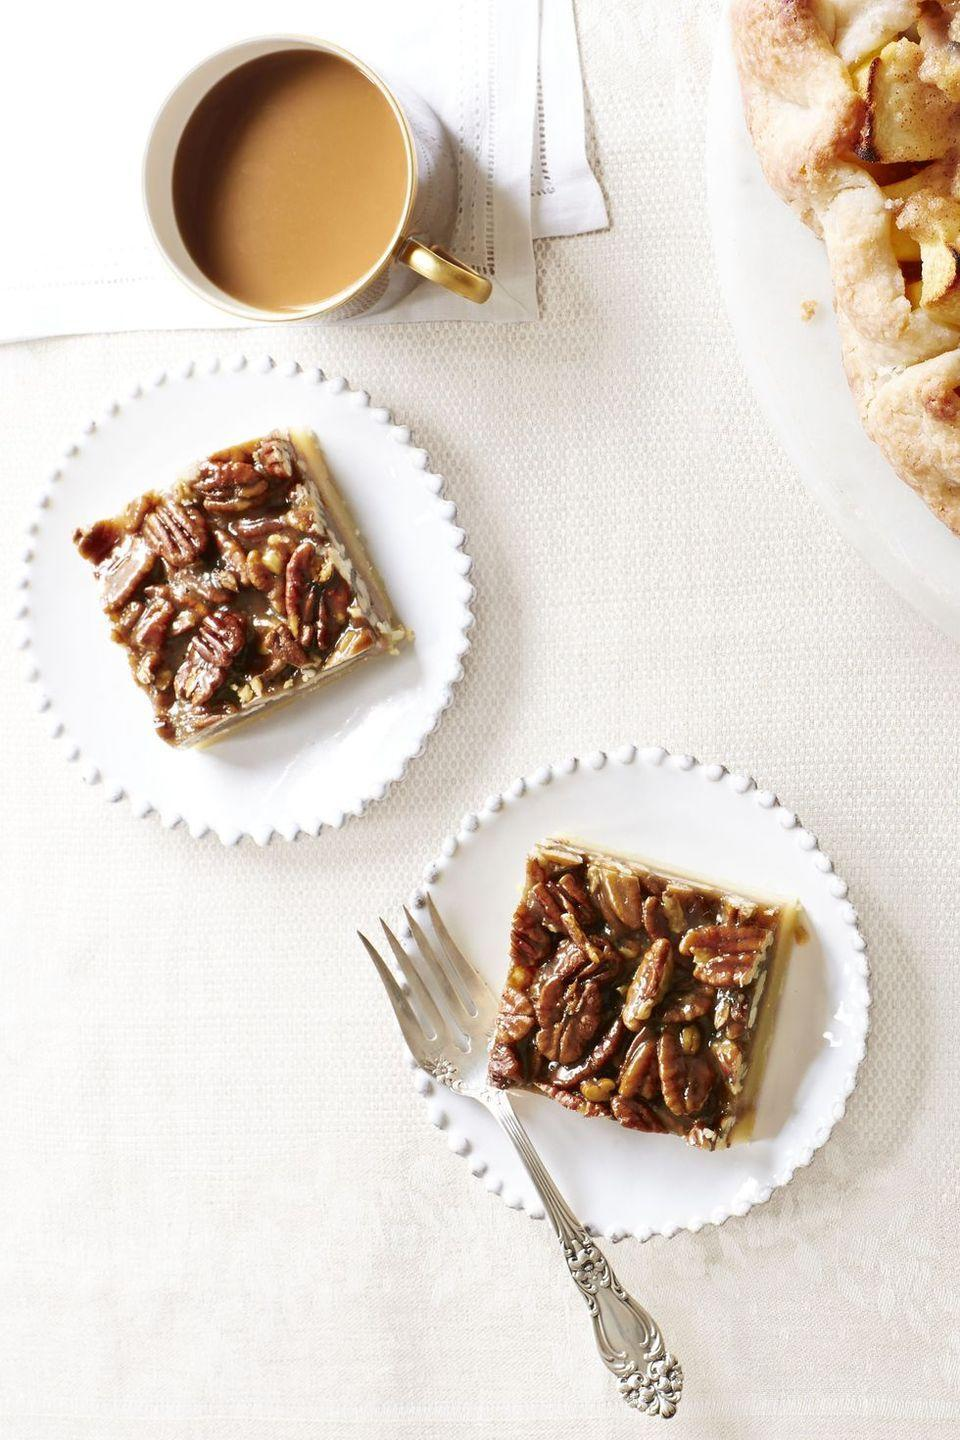 "<p>Here's a grab-and-go dessert option, in case you're hoping to give your guests the hint to leave early. (This is a judgement-free zone!)</p><p><em><a href=""https://www.goodhousekeeping.com/food-recipes/a14469/pecan-squares-recipe-ghk1113/"" rel=""nofollow noopener"" target=""_blank"" data-ylk=""slk:Get the recipe for Pecan Squares »"" class=""link rapid-noclick-resp"">Get the recipe for Pecan Squares »</a></em></p>"